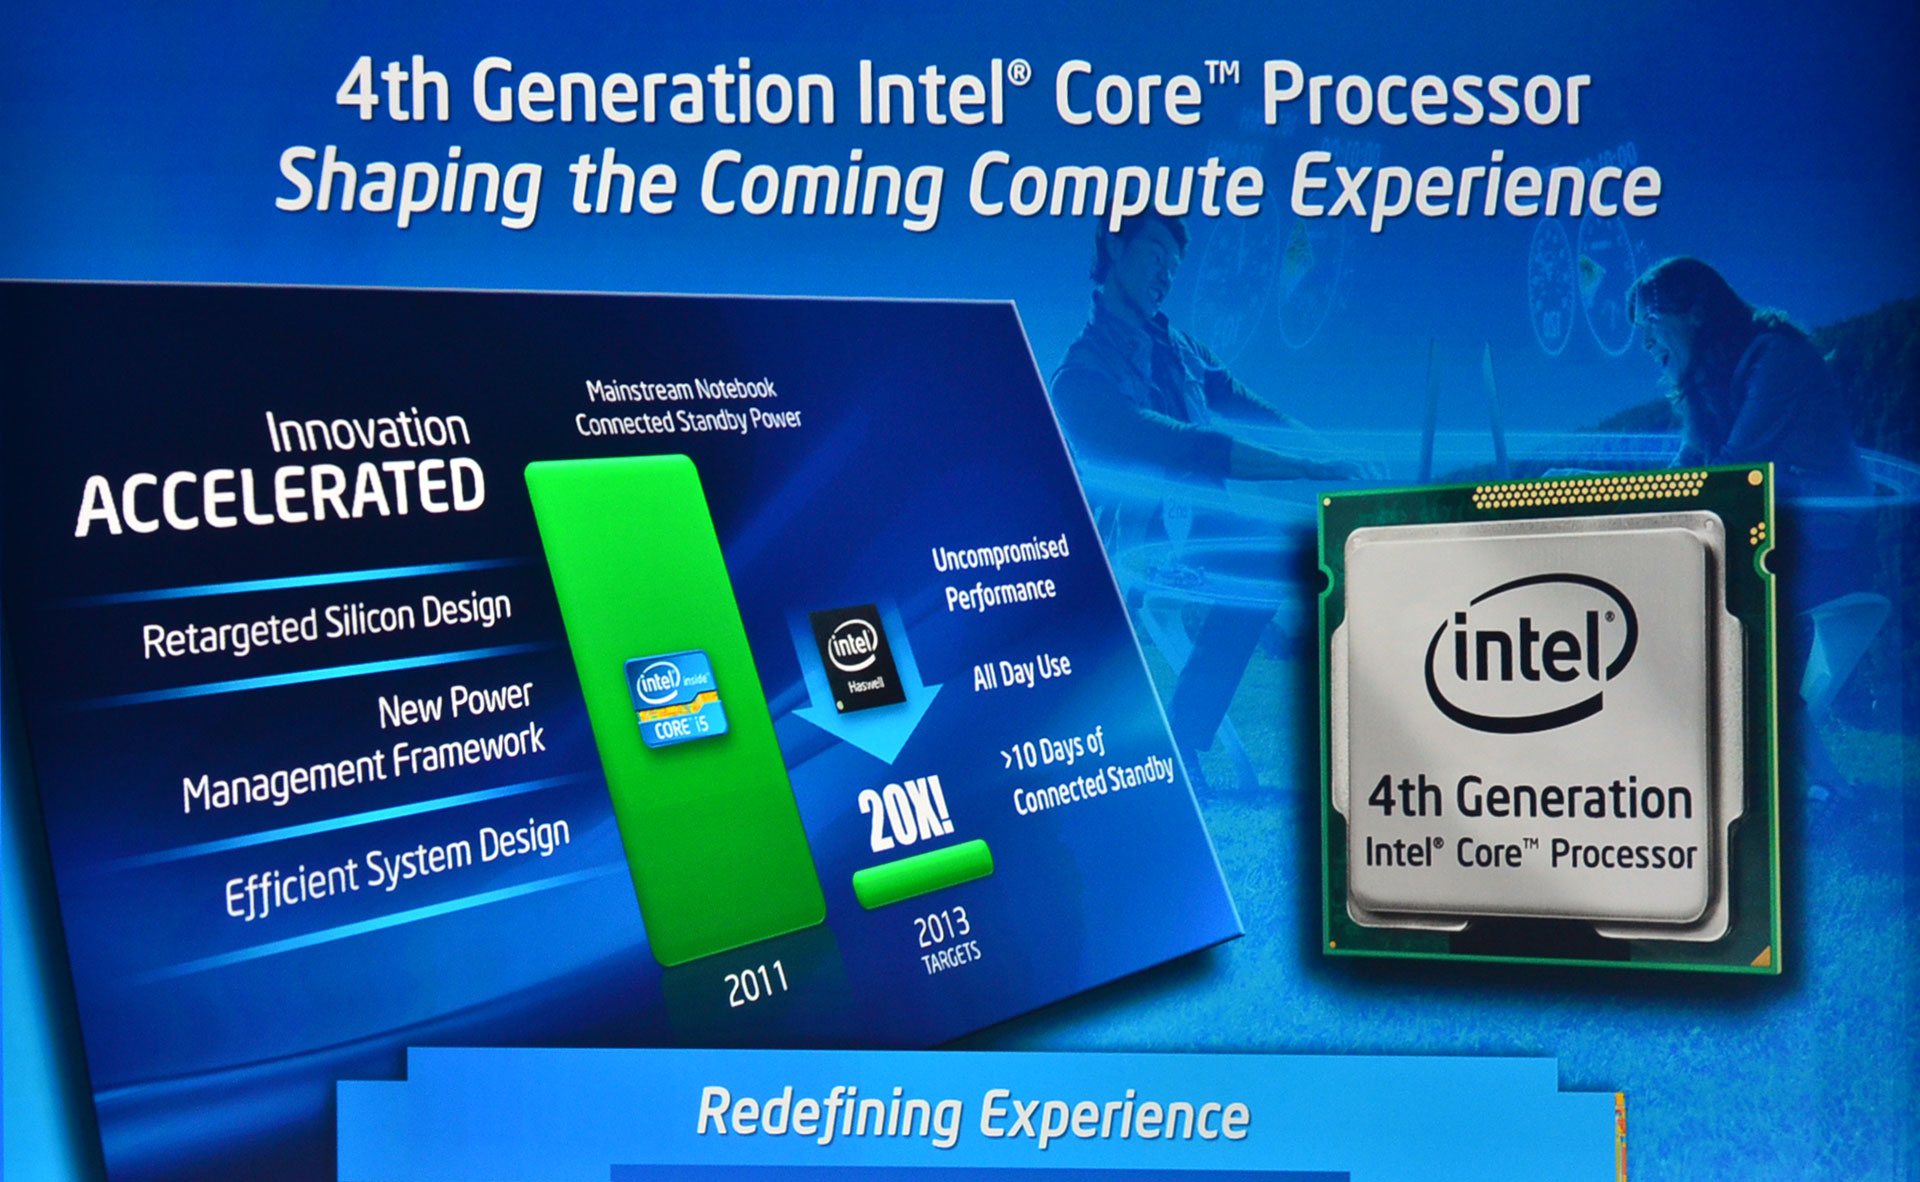 Intel 4th Gen